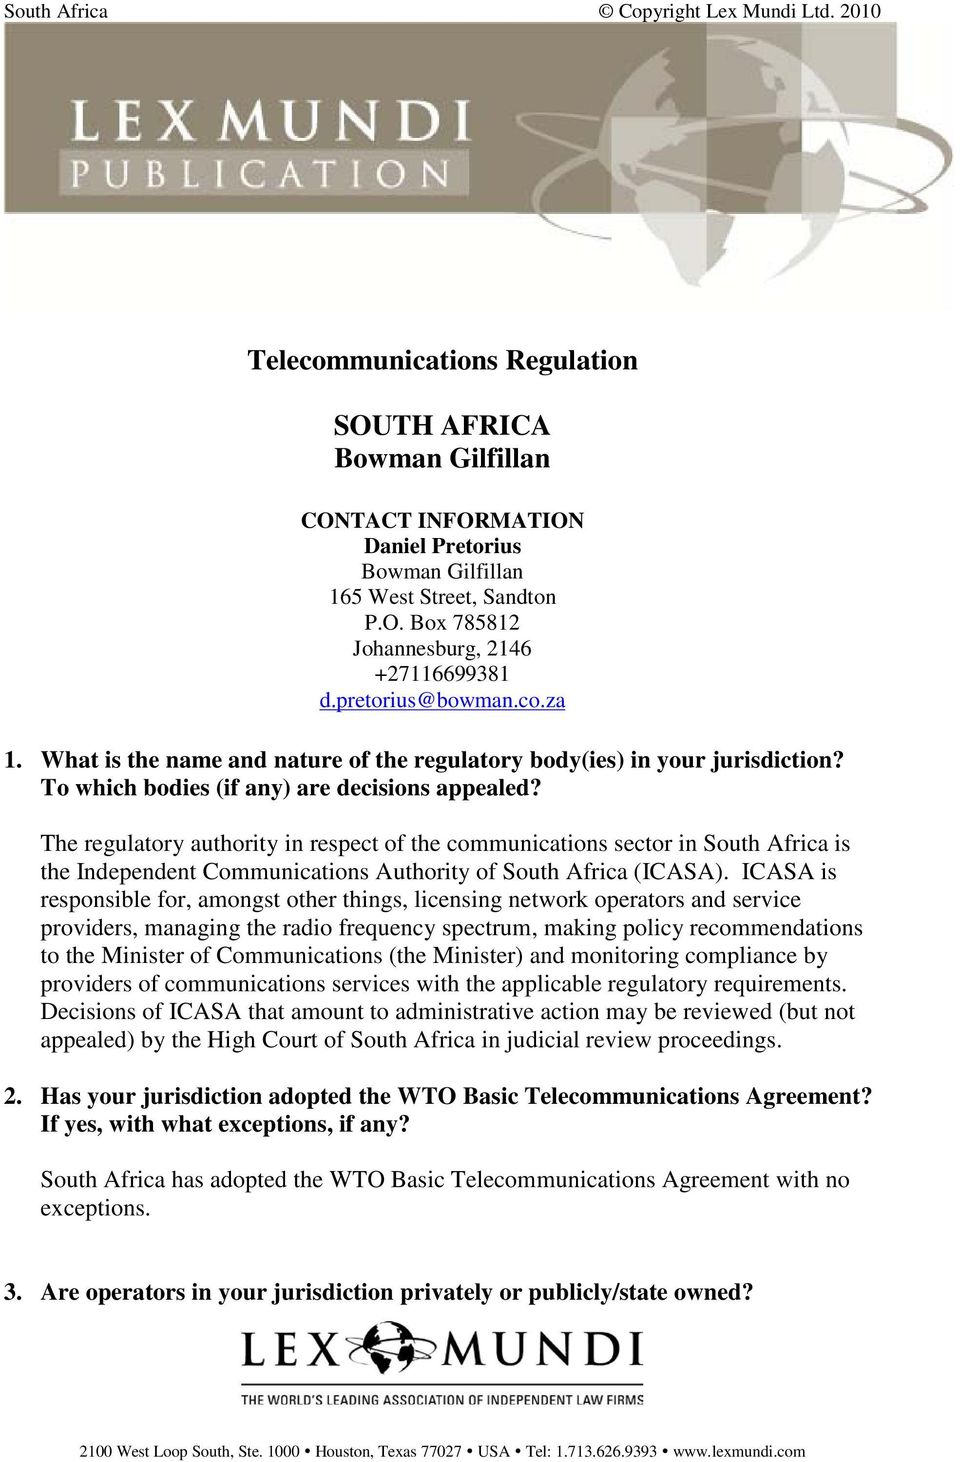 The regulatory authority in respect of the communications sector in South Africa is the Independent Communications Authority of South Africa (ICASA).